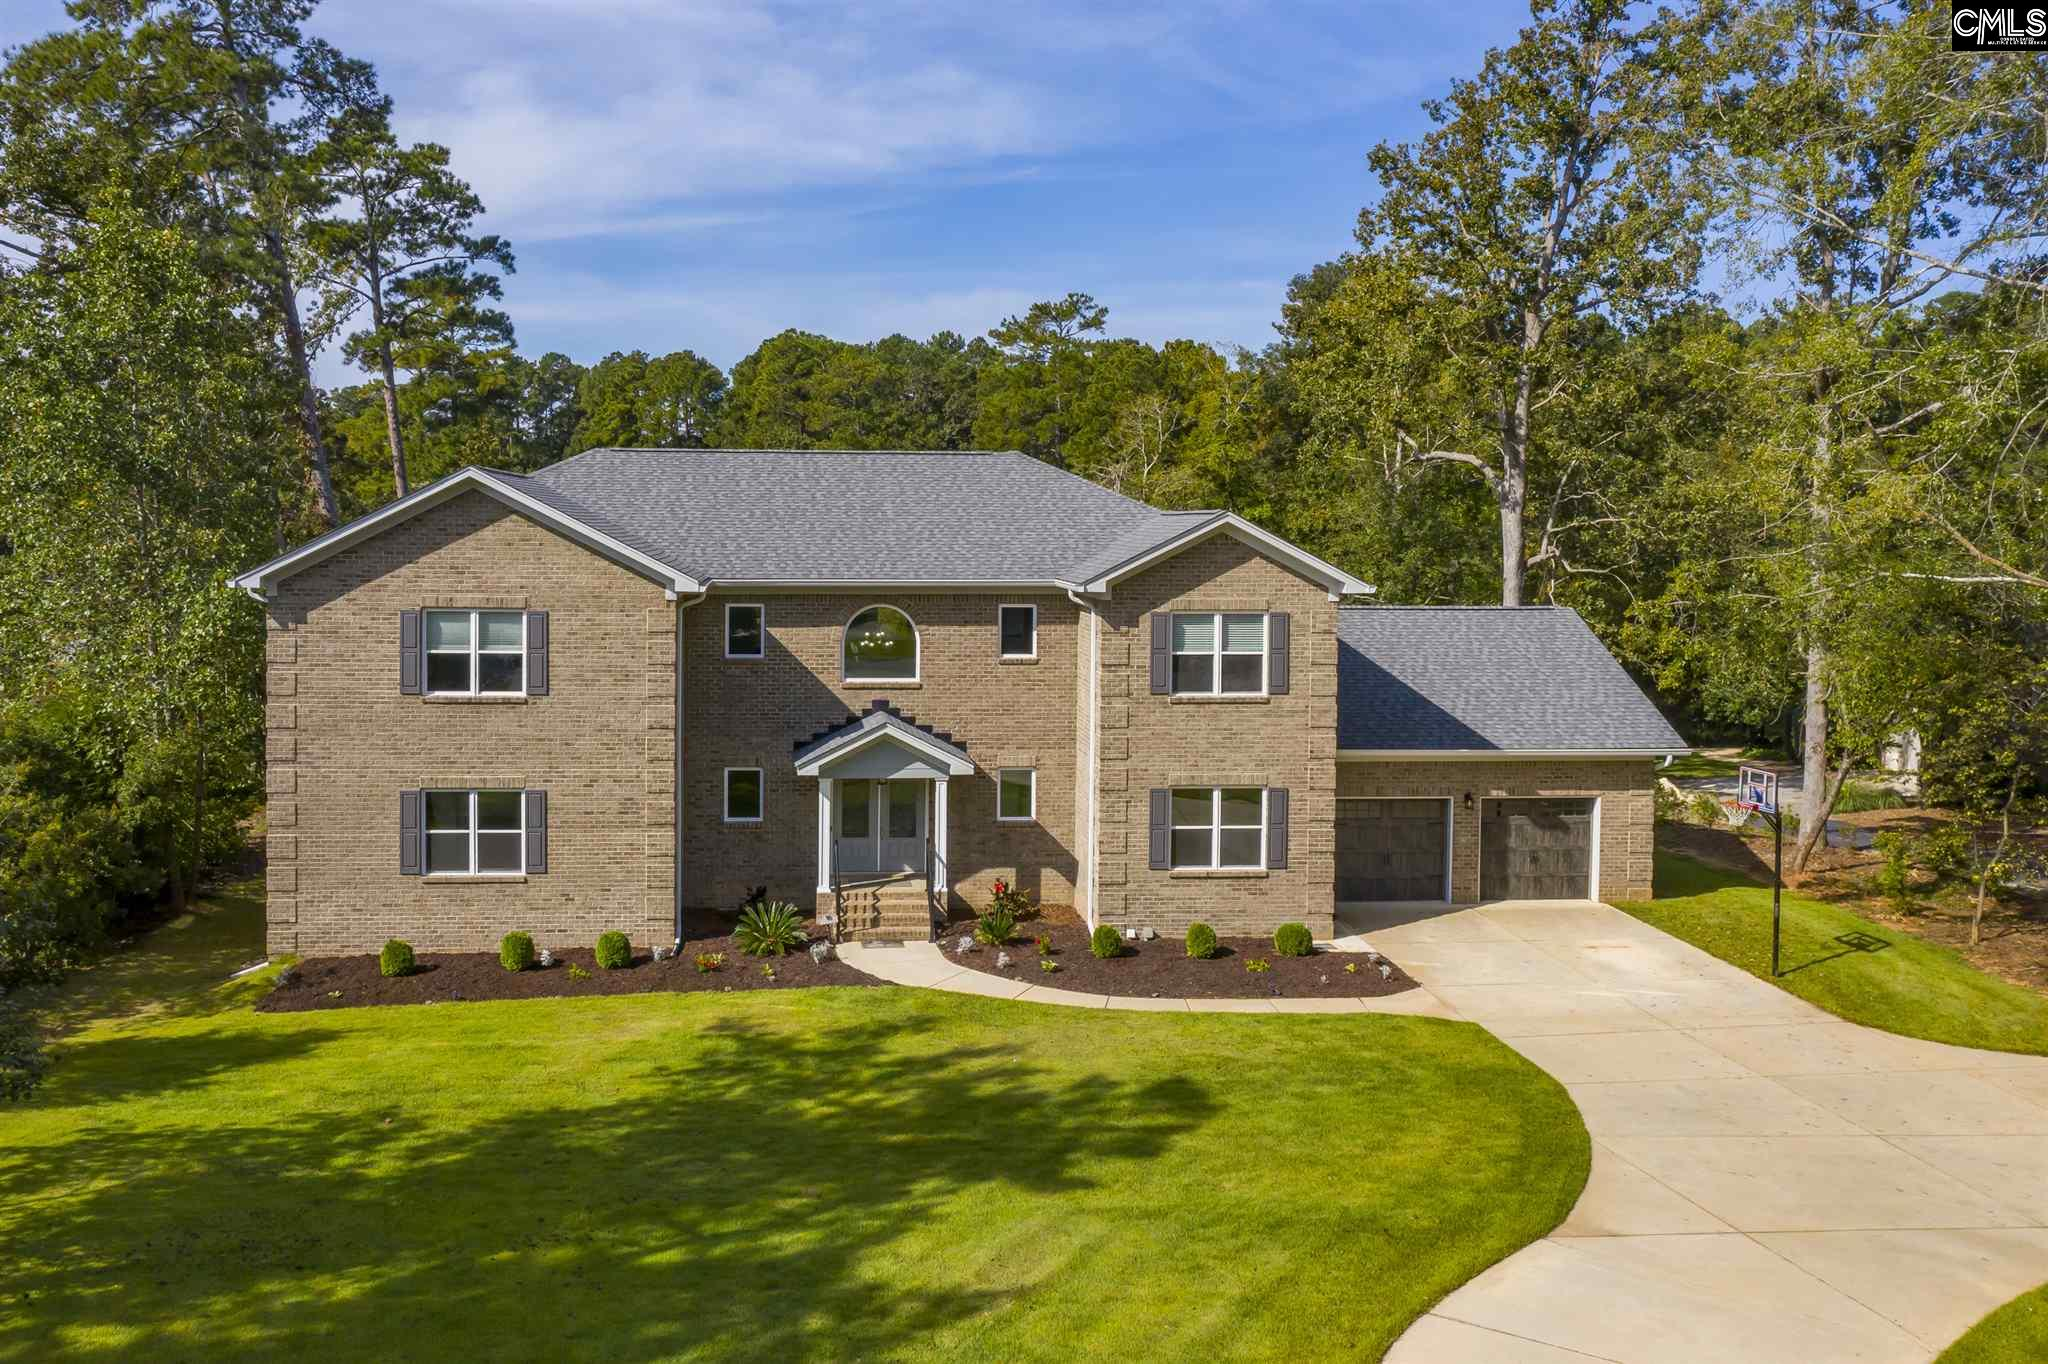 136 Turnberry Lexington, SC 29072